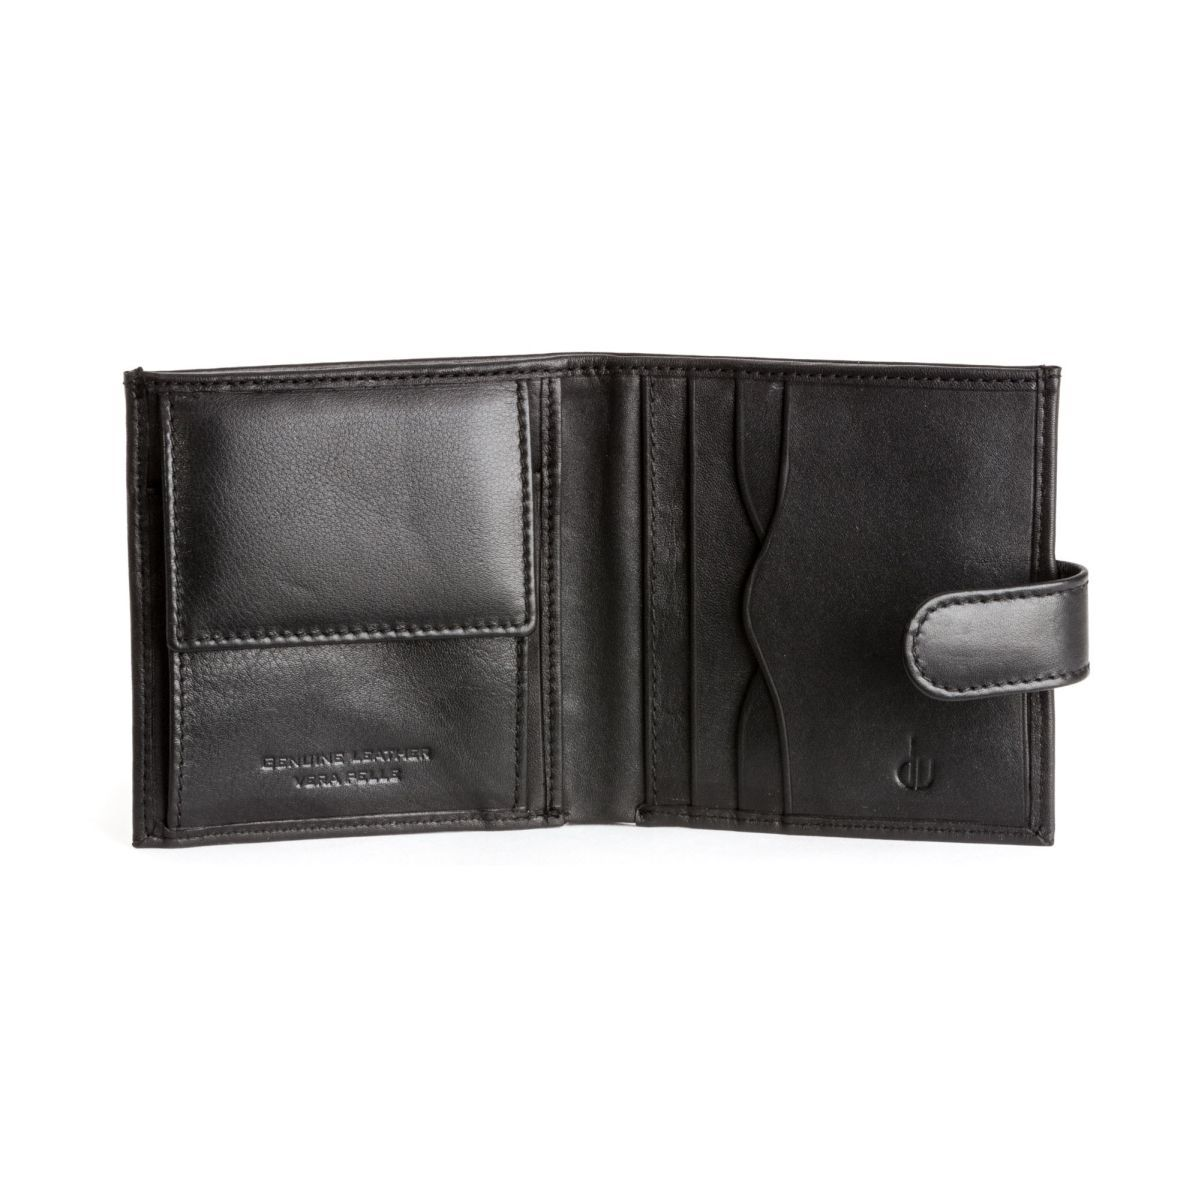 Men's Leather Wallet With Snap Closure - Black